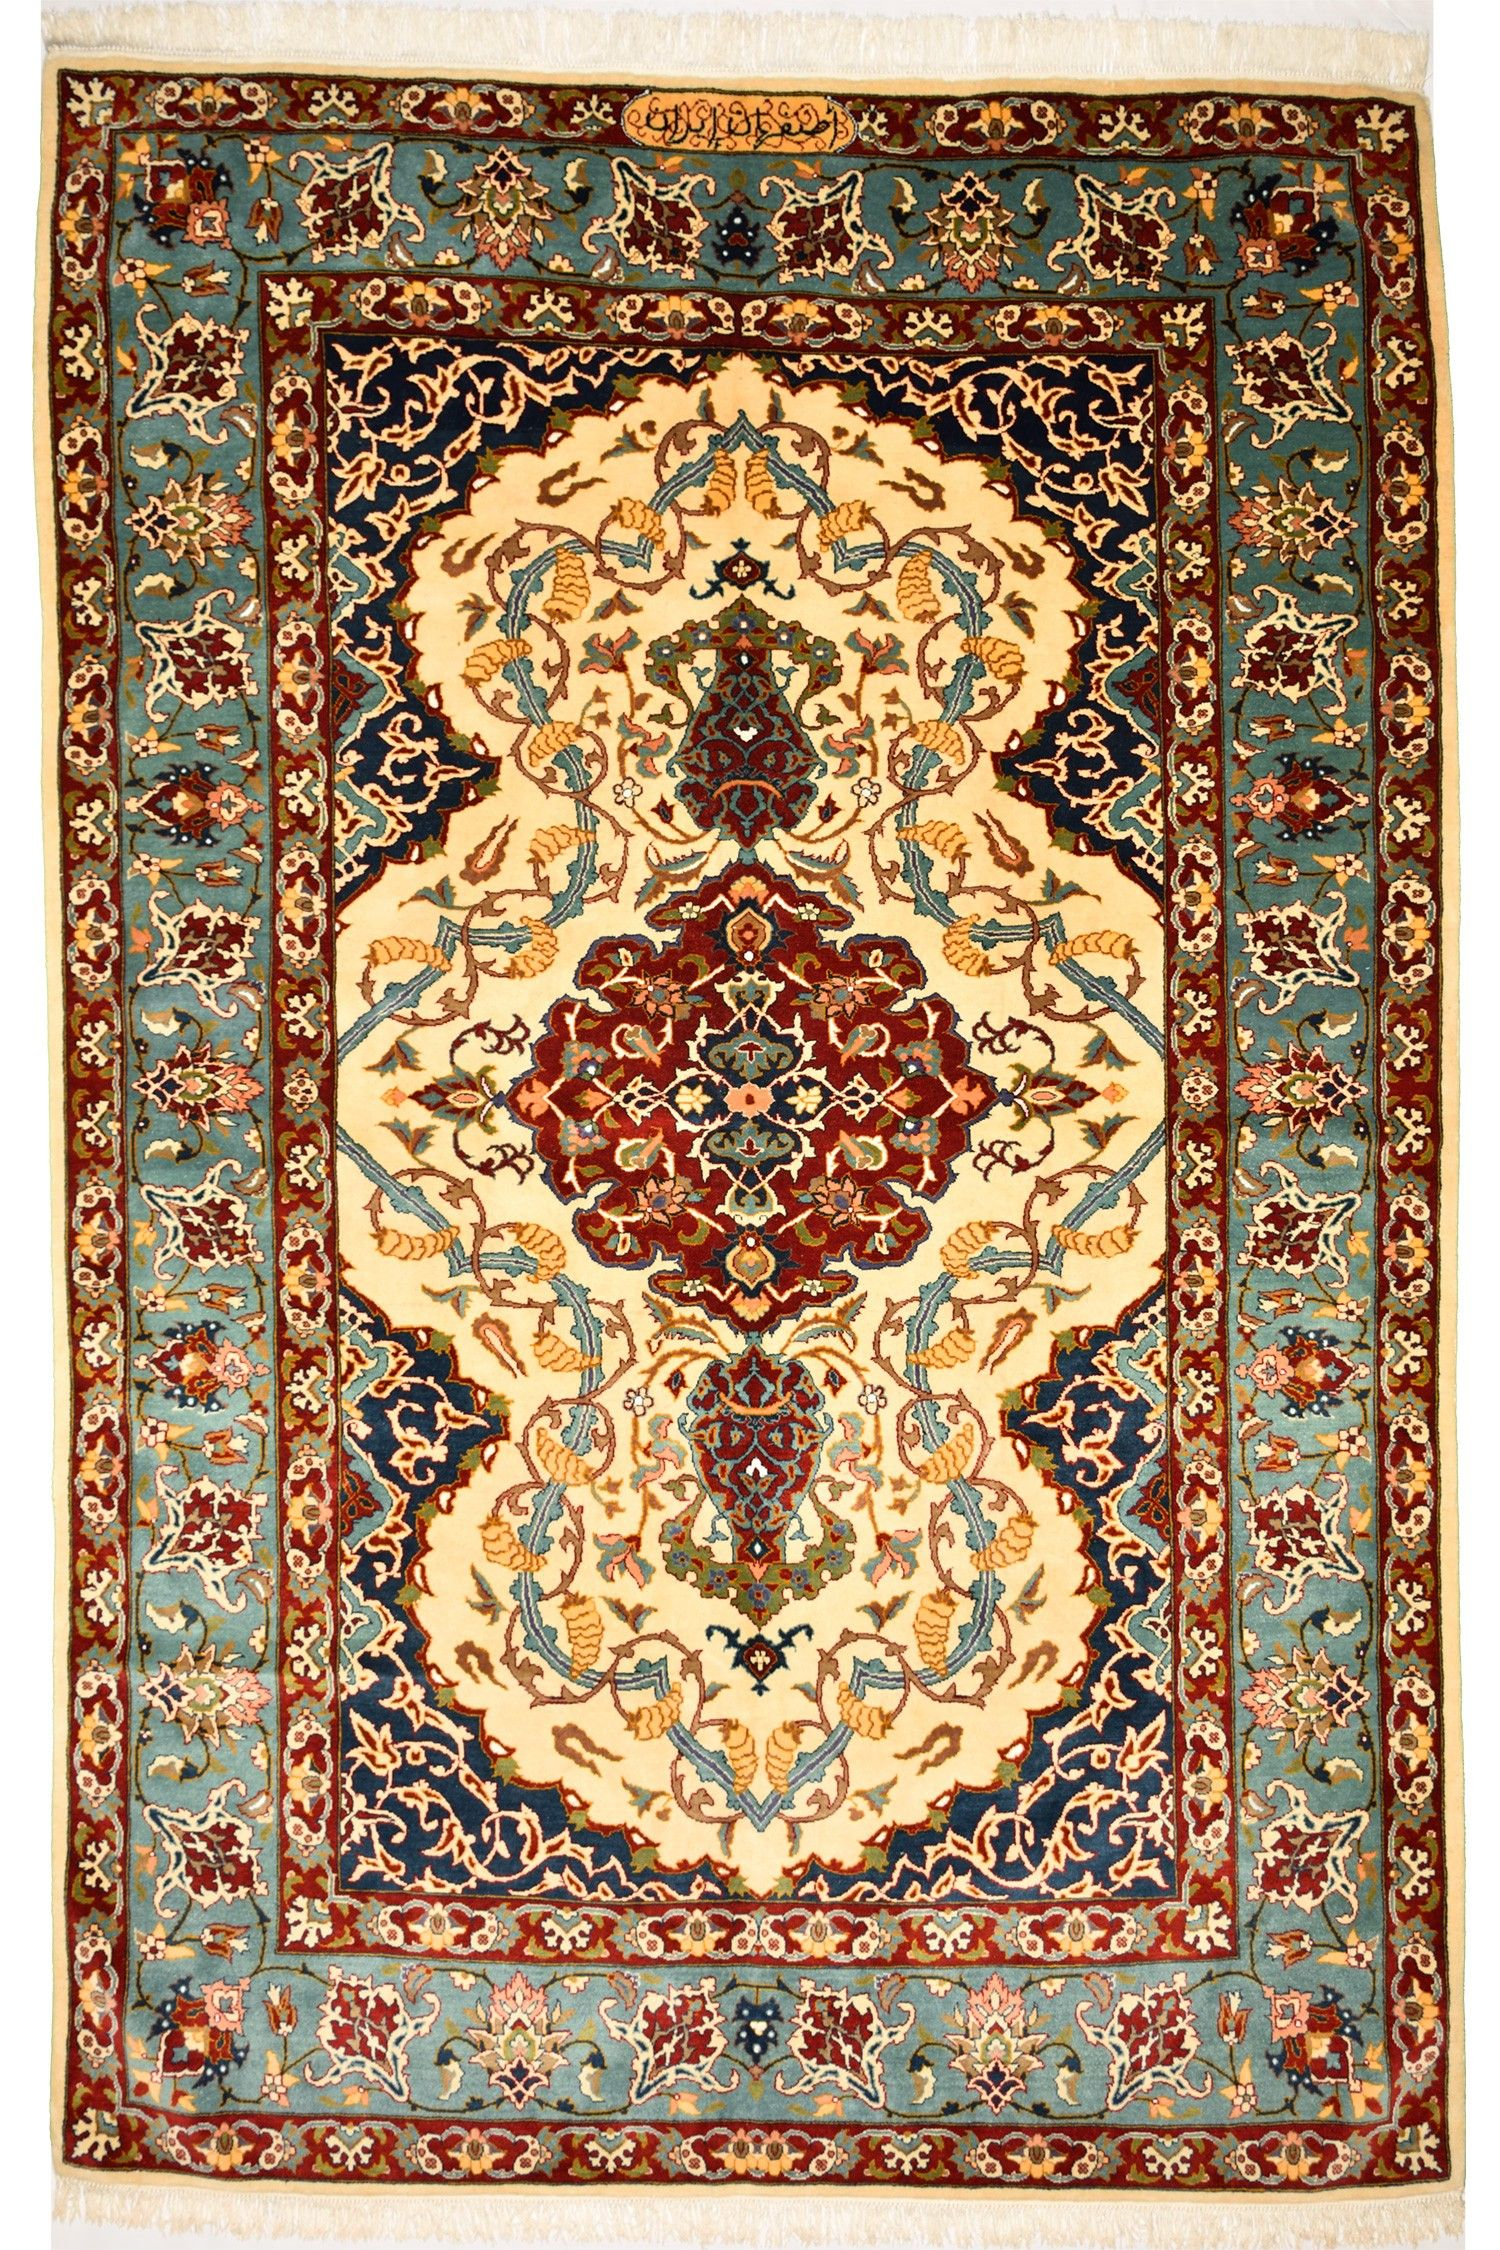 Isfahan Iran Wool And Coton Carpet Dimentions 294cm X 191cm Knot 36 Per Cm2 Price 1650 Save Up To 150 We Appreciate Much A Rugs On Carpet Carpet Rugs